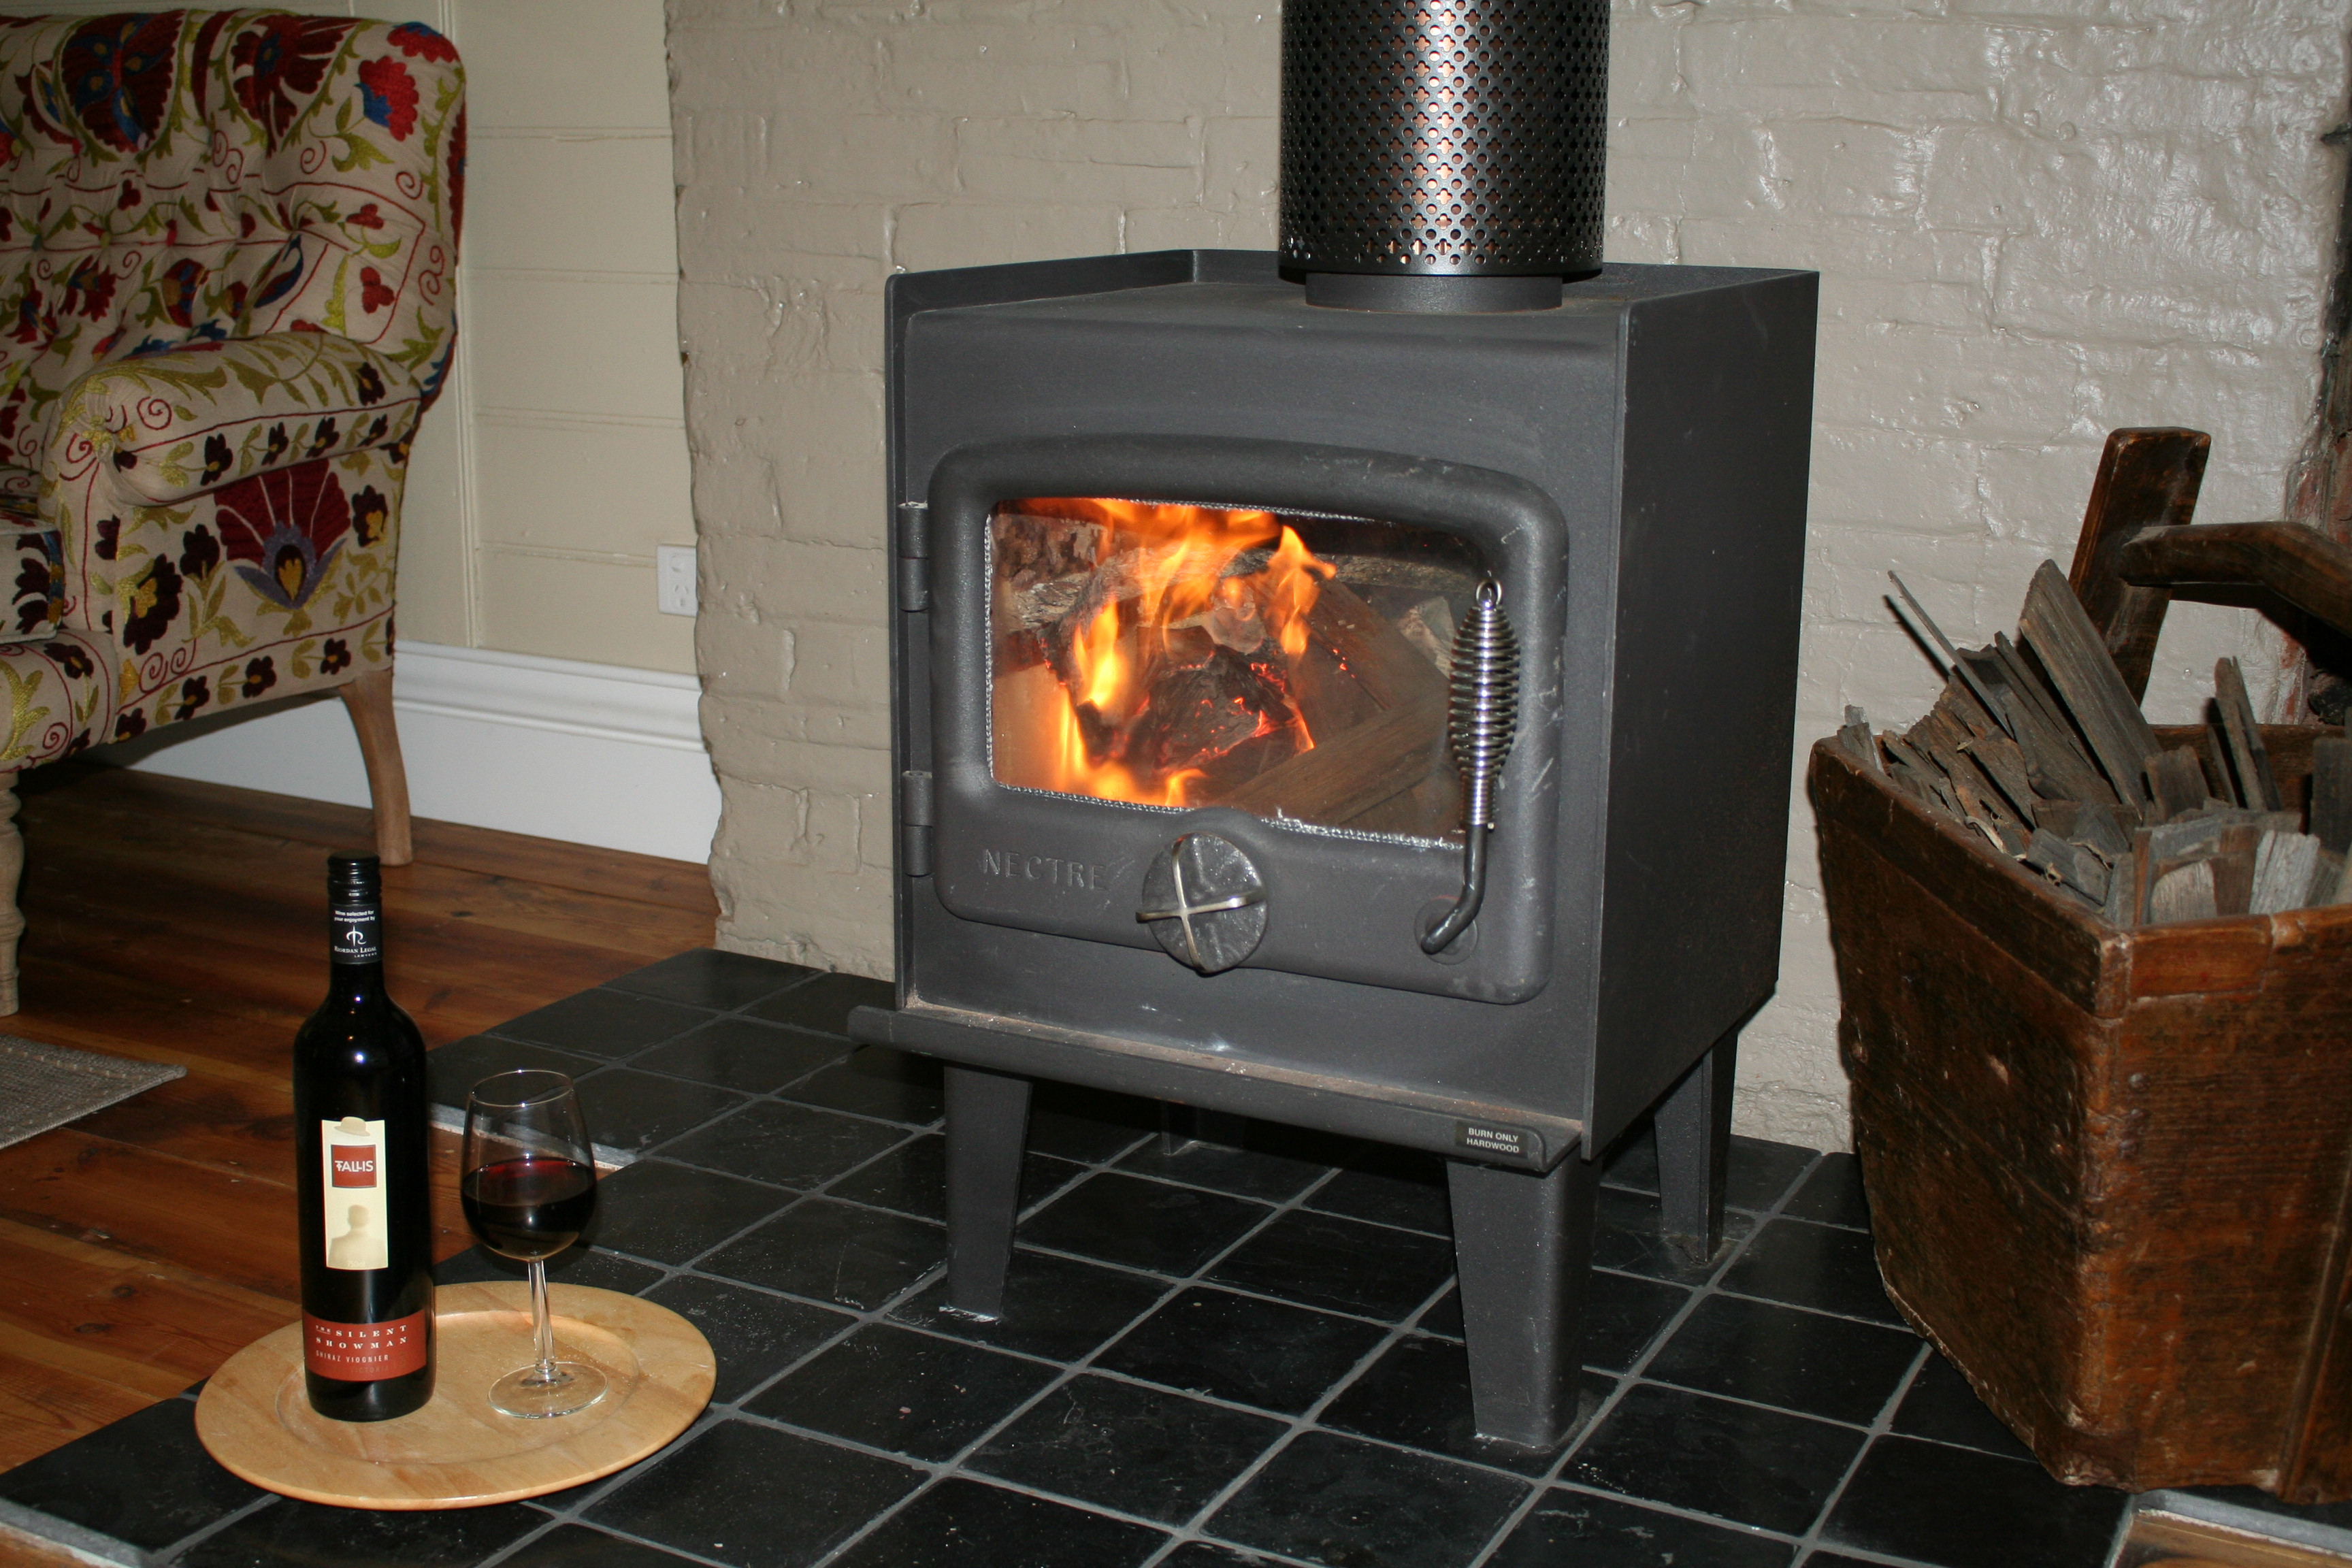 Enjoy the warmth of a log fire